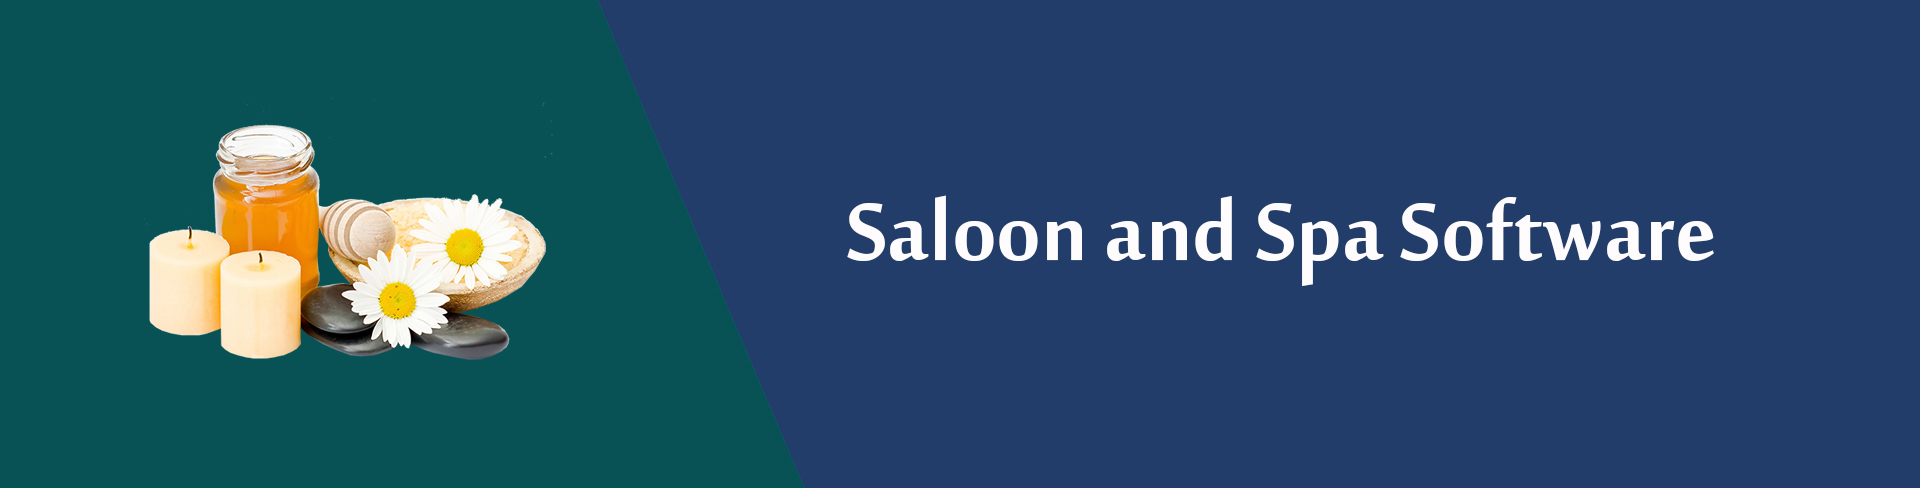 Saloon and Spa Software